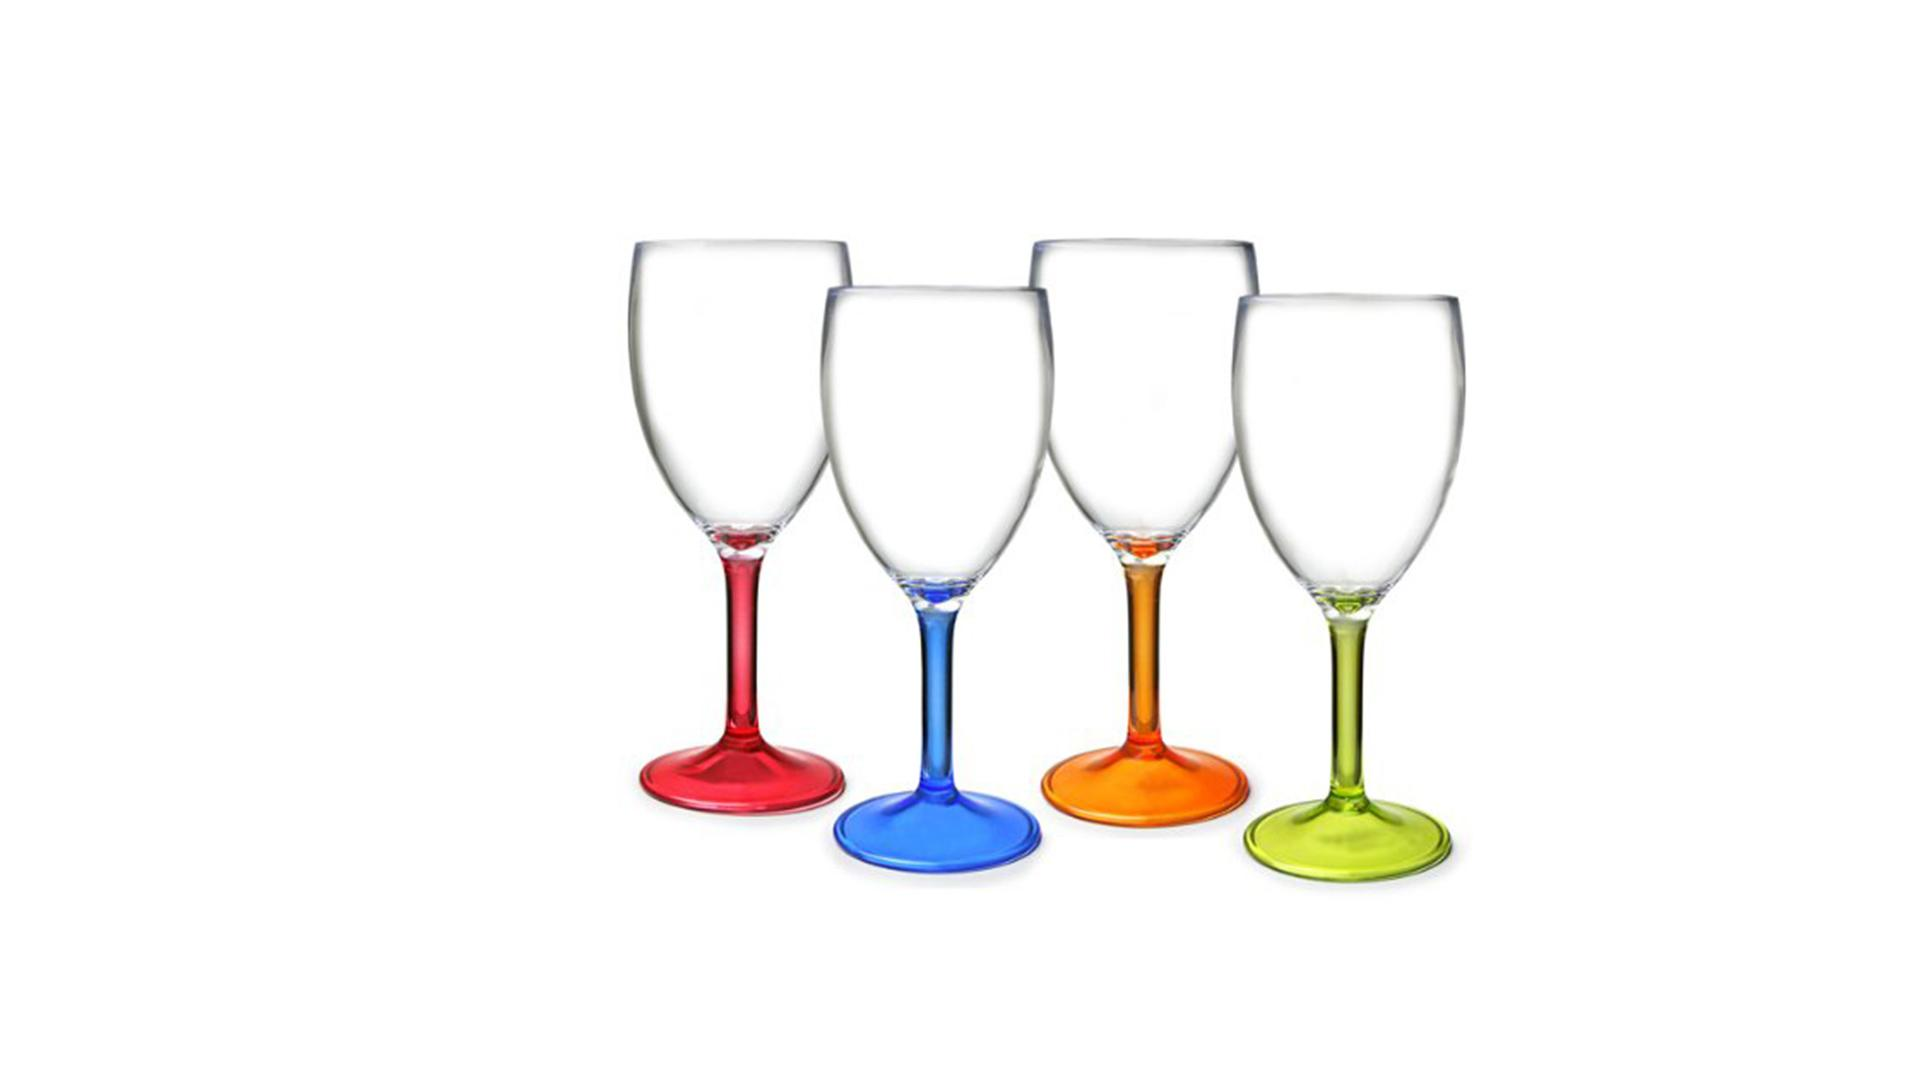 Acrylic Wine Glasses - Celebrity Big Brother 2017